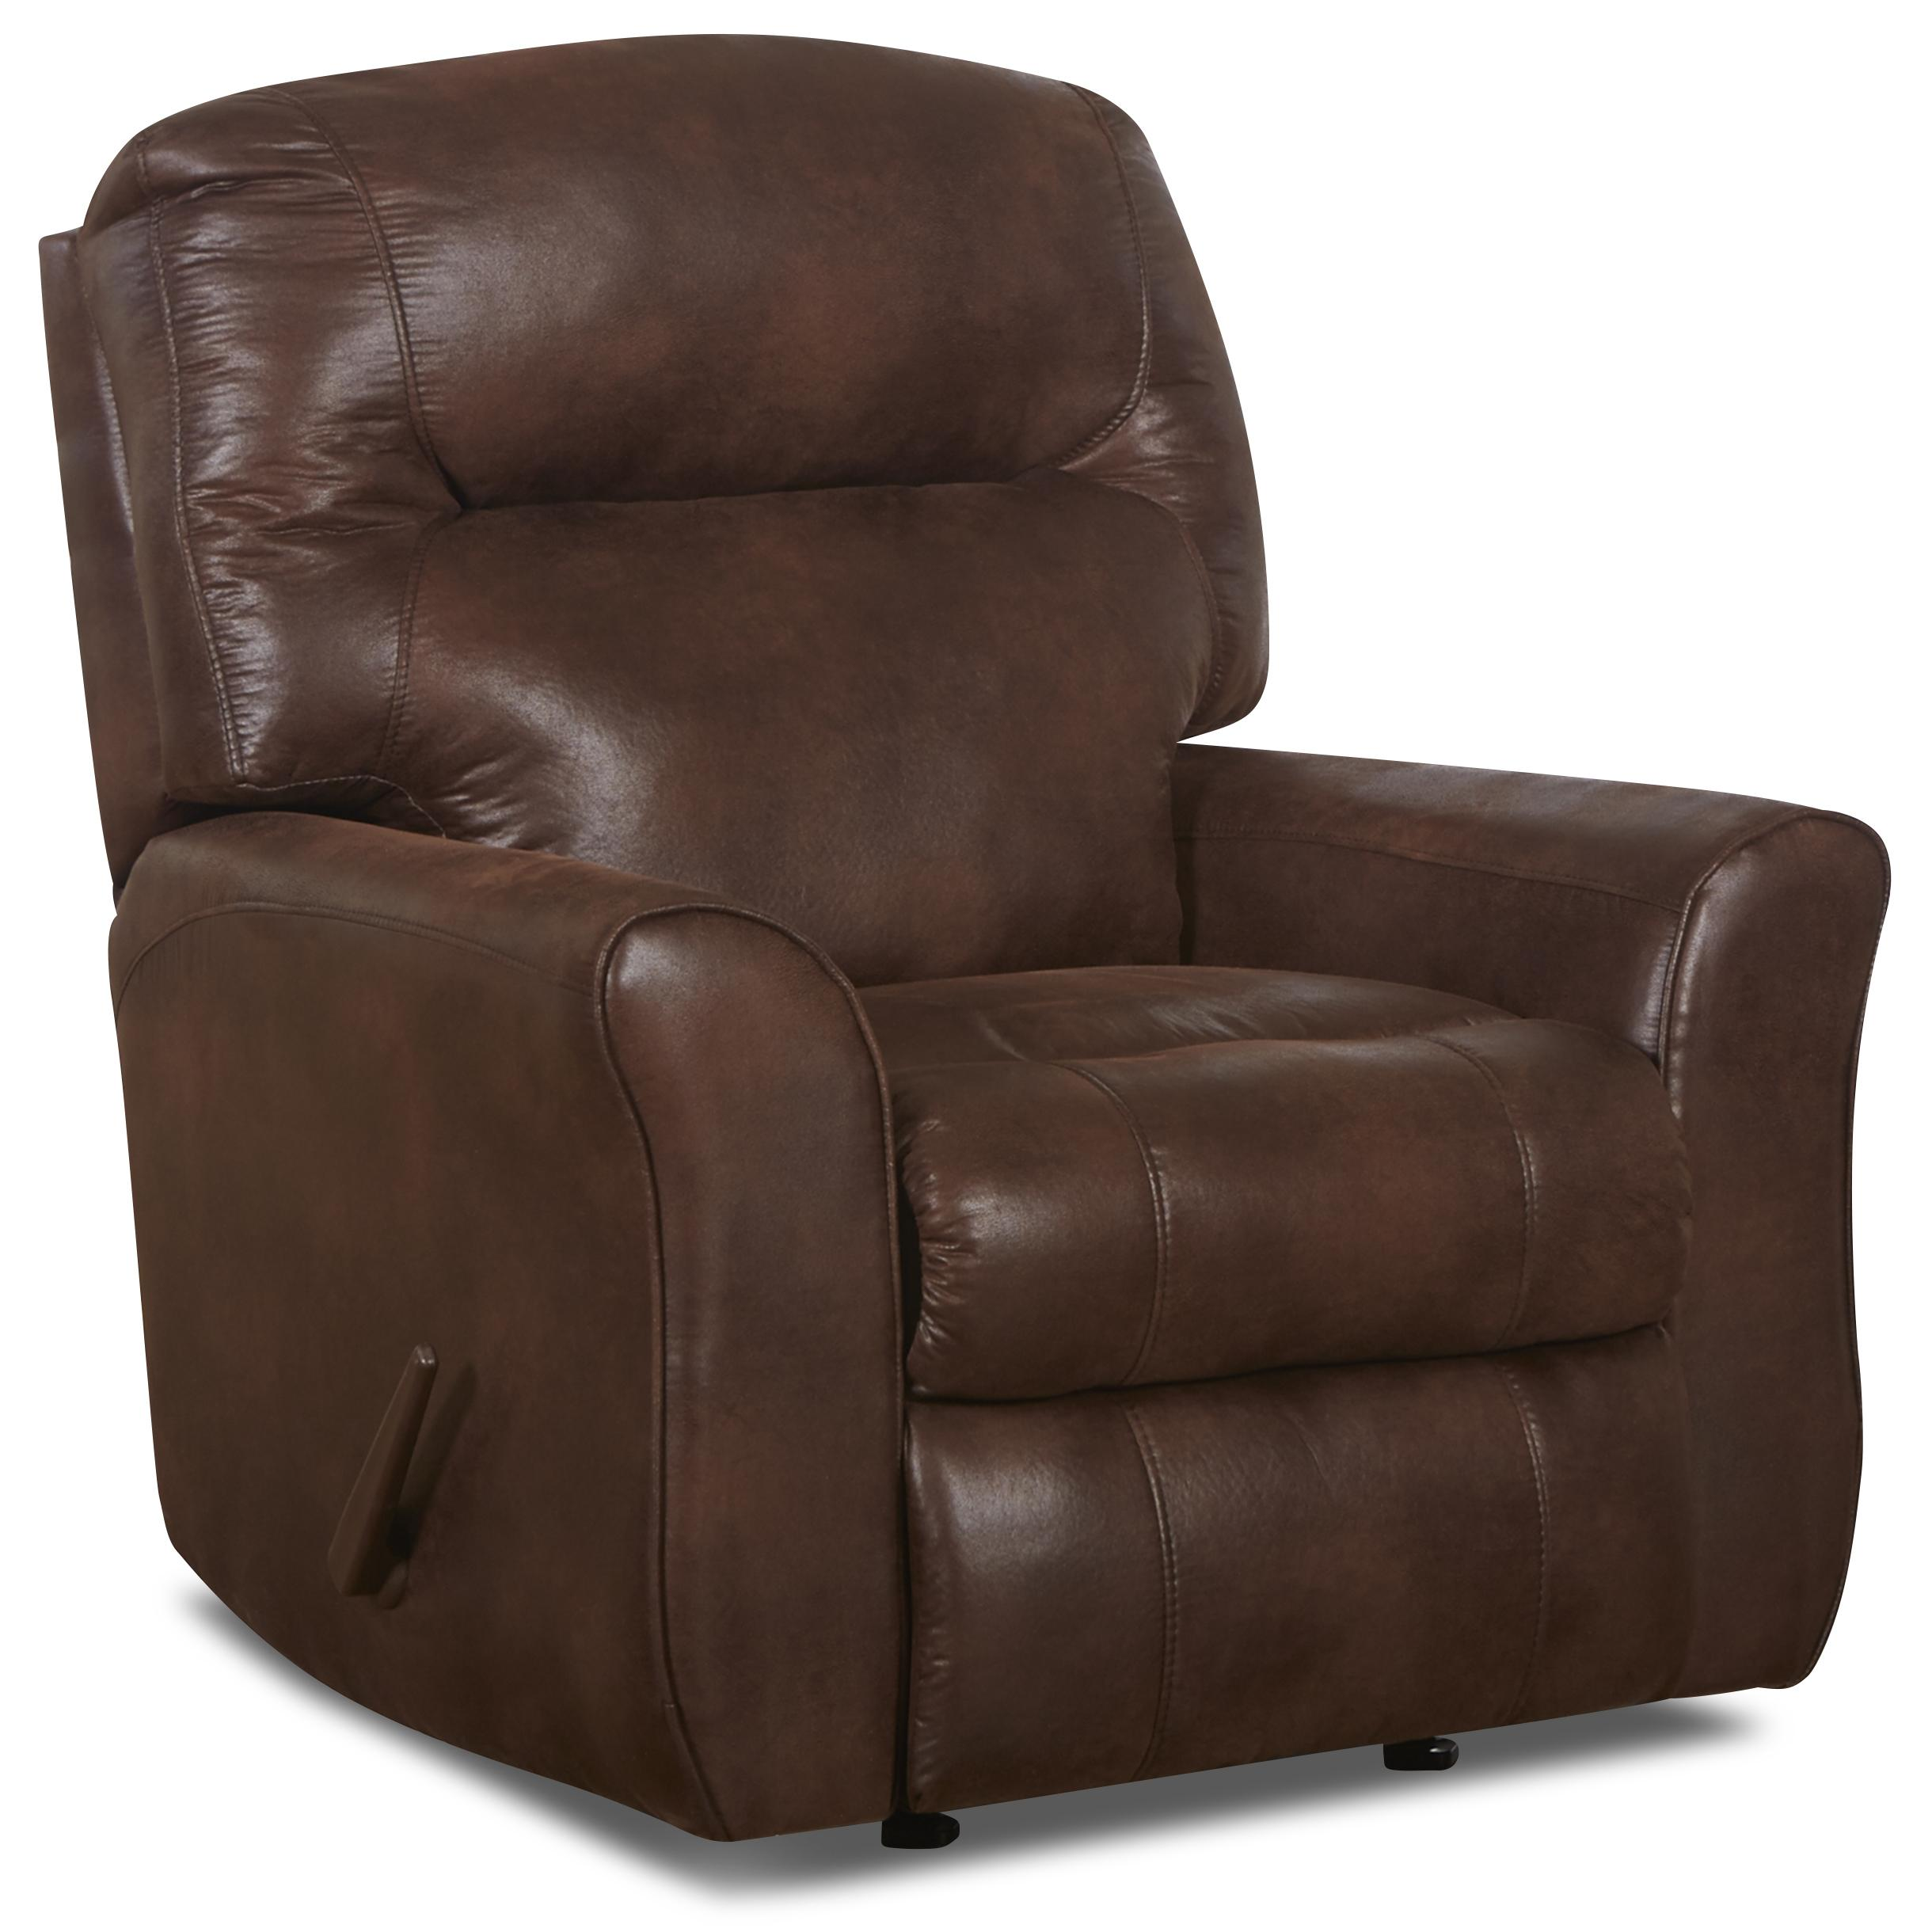 Klaussner Schwartz Casual Bonded Leather Reclining Rocking